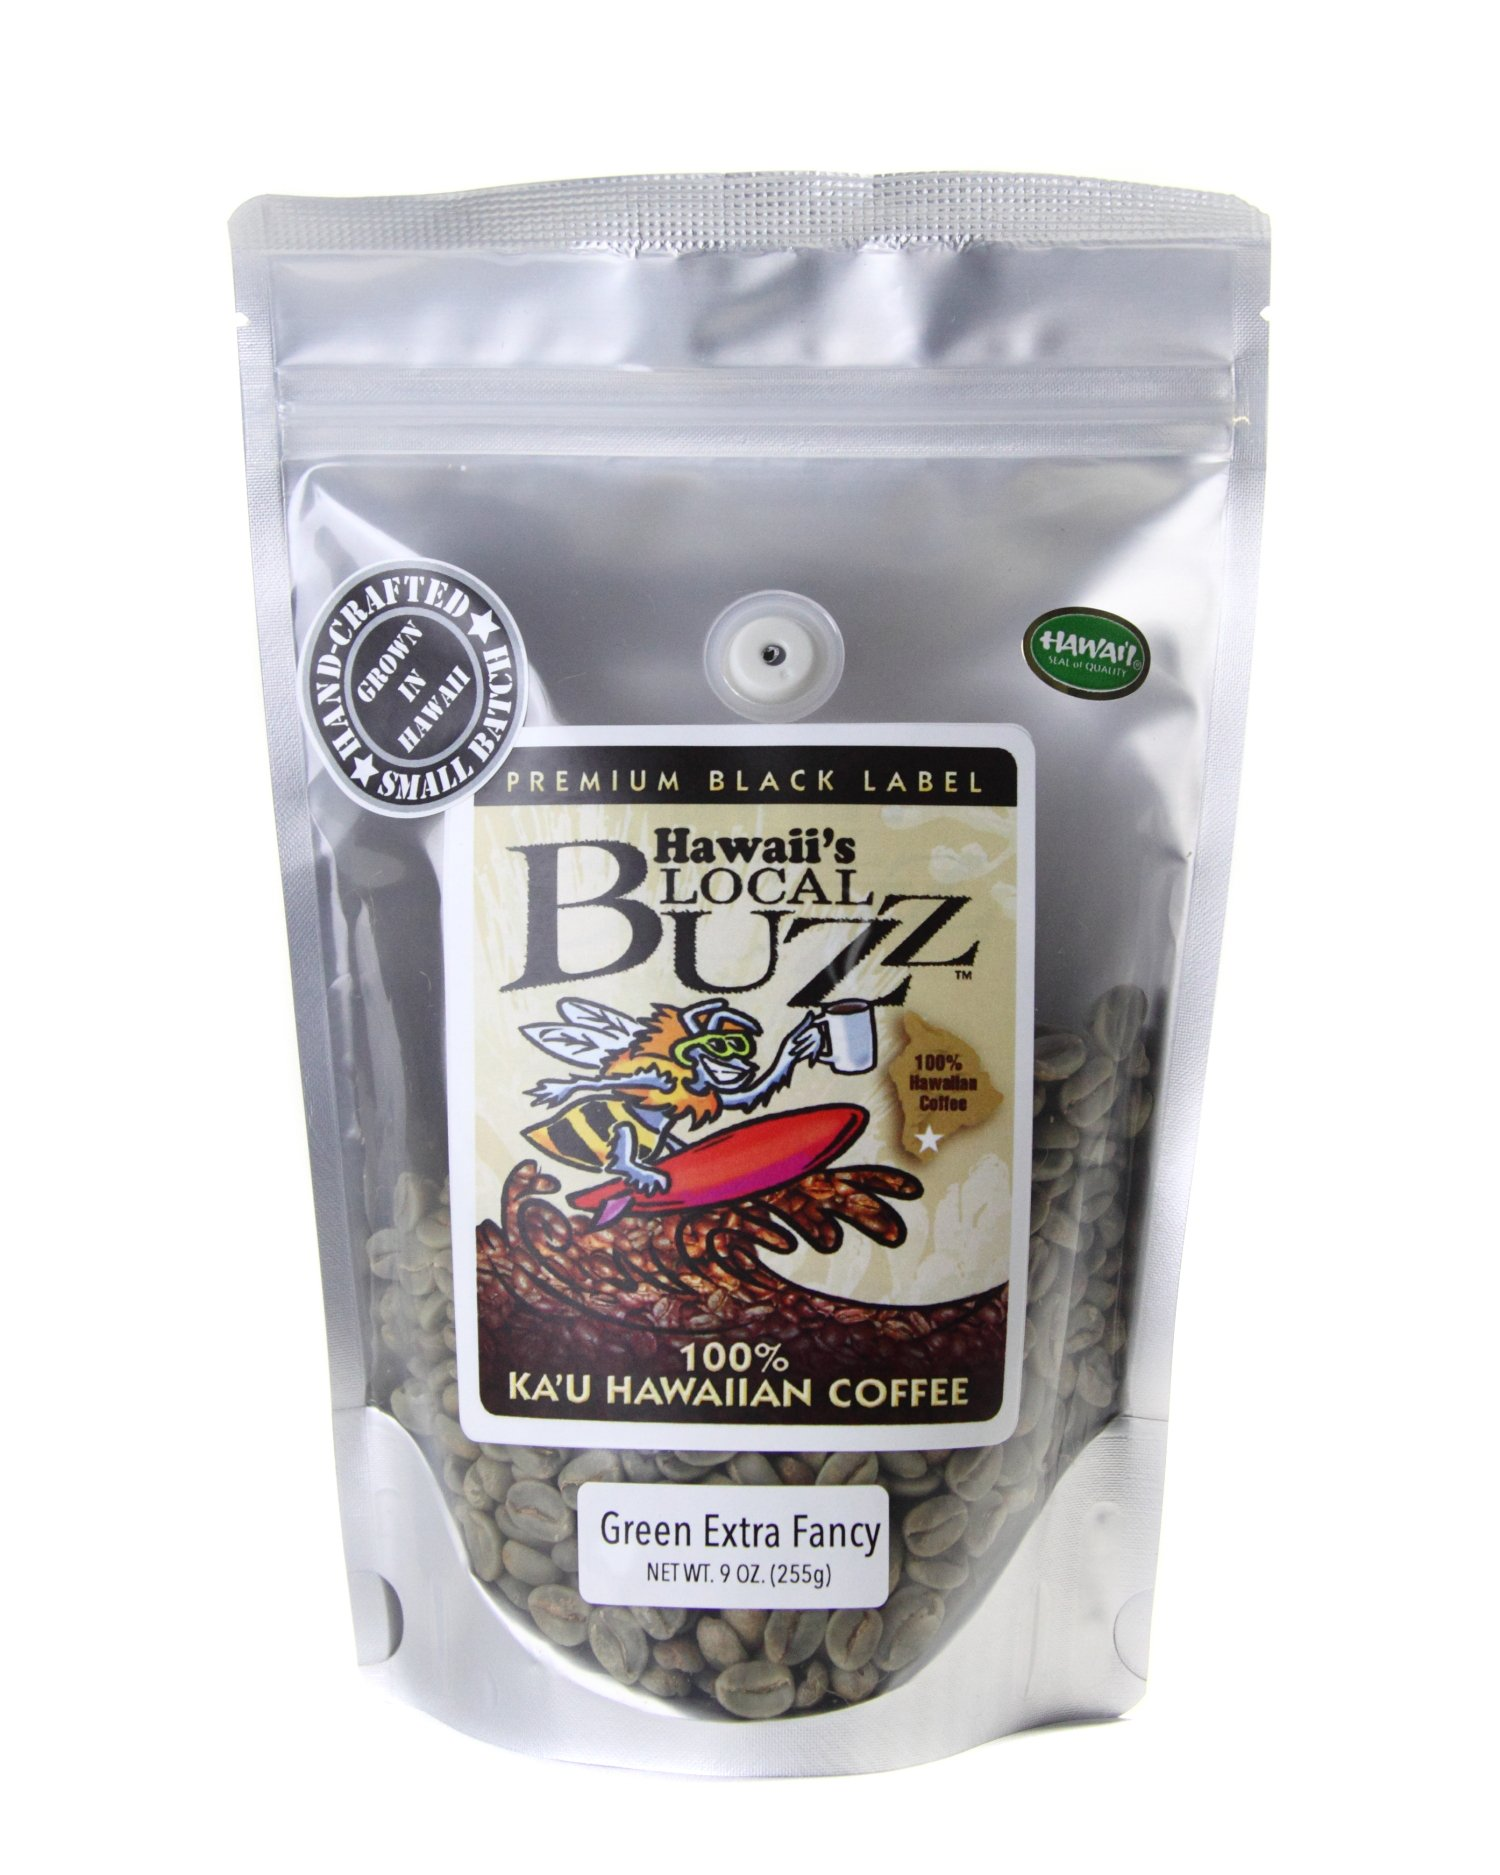 Hawaii's Local Buzz Premium Black Label Extra Fancy, Green (Unroasted) Beans, 9 Ounce